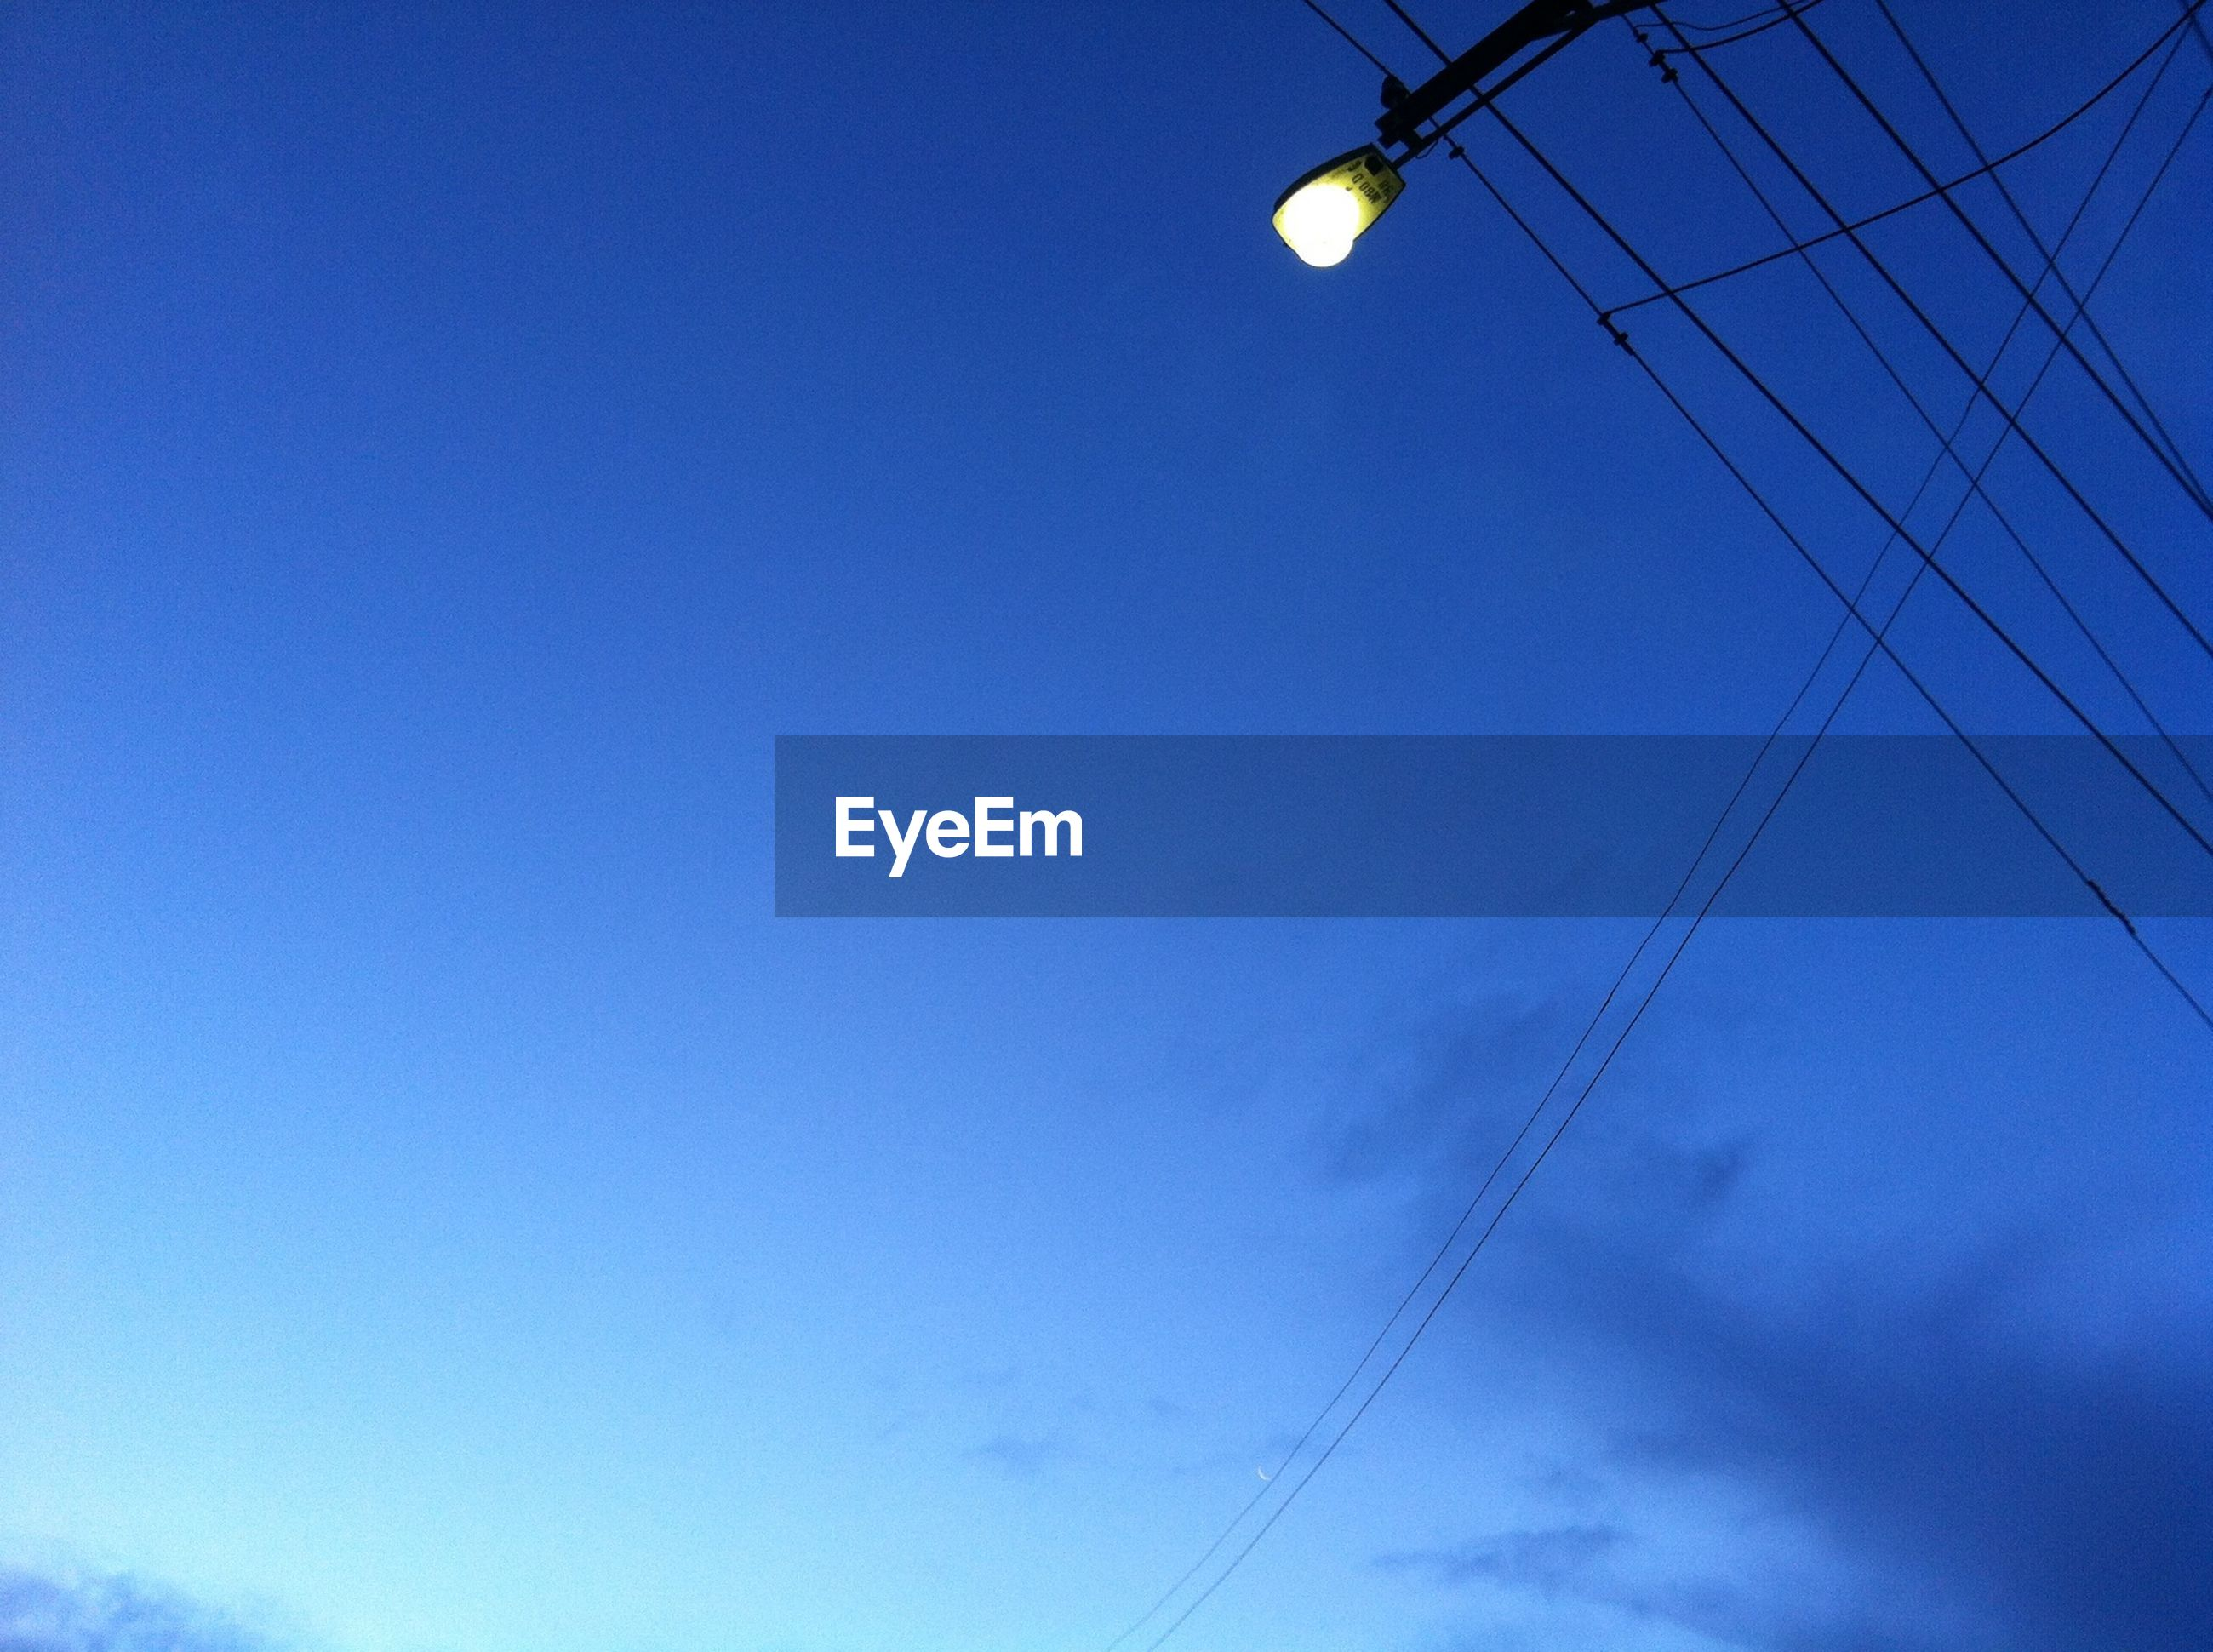 low angle view, electricity, power line, moon, clear sky, blue, cable, connection, power supply, lighting equipment, sky, copy space, electricity pylon, street light, technology, fuel and power generation, electric light, outdoors, dusk, no people